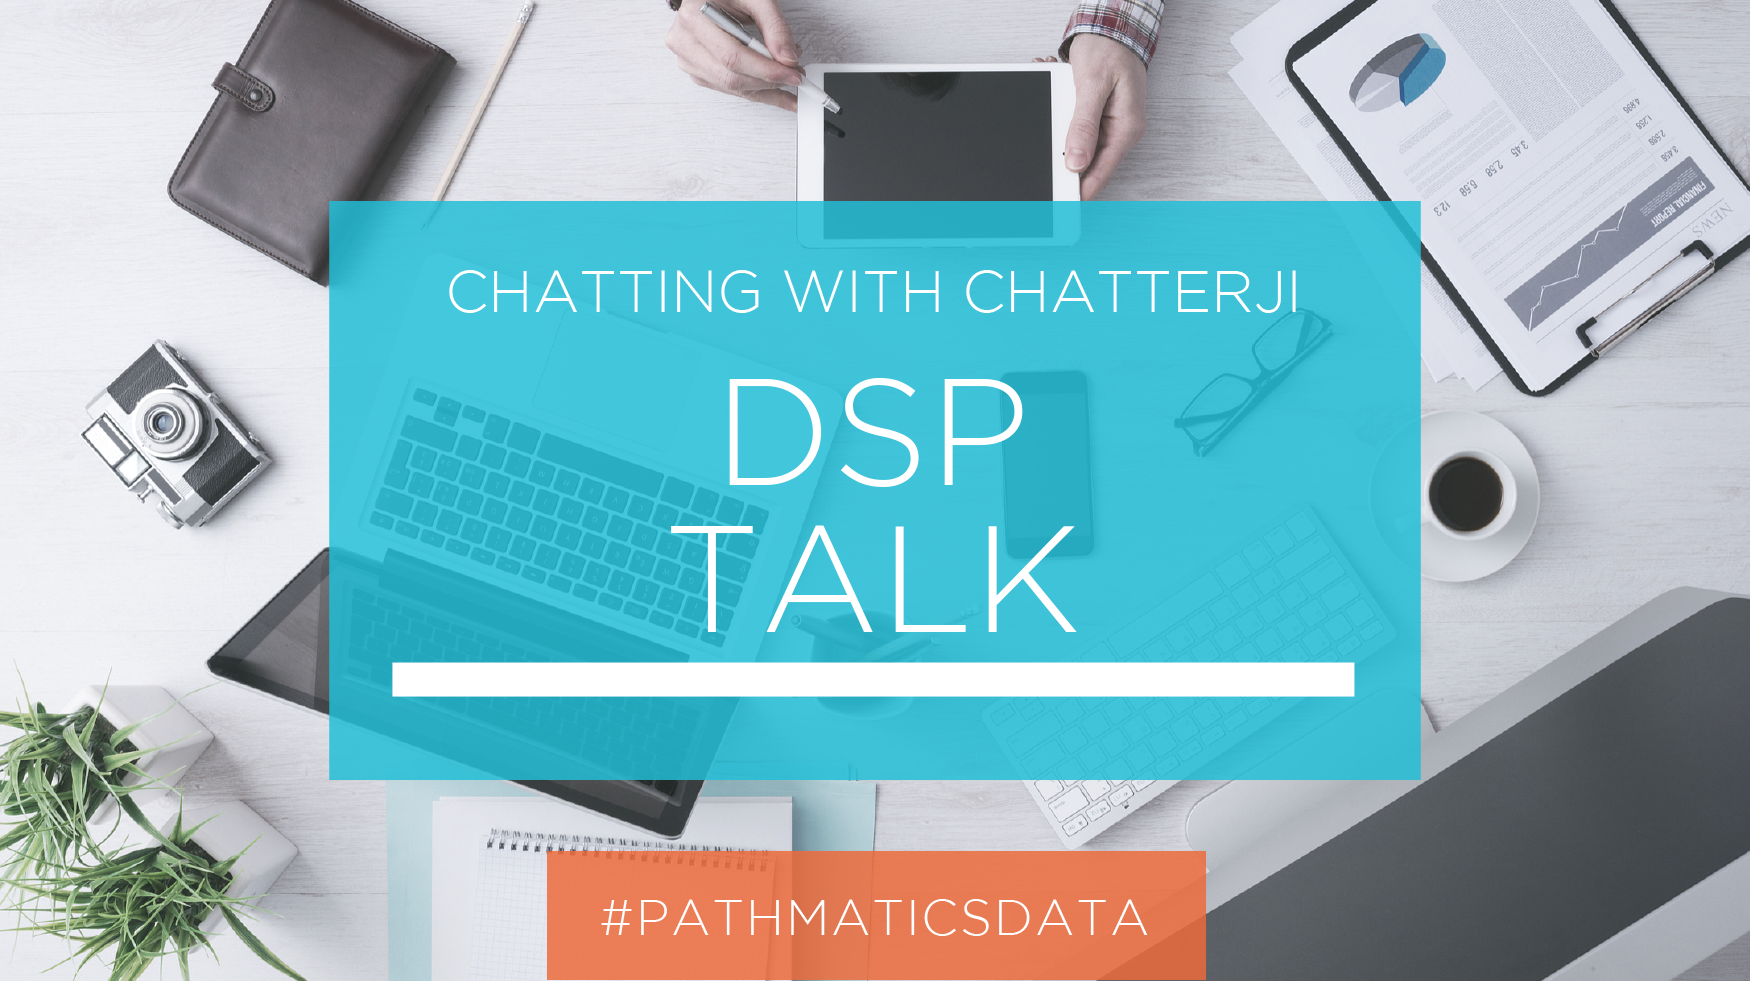 Chatting With Chatterji I DSP Talk - Featured Image